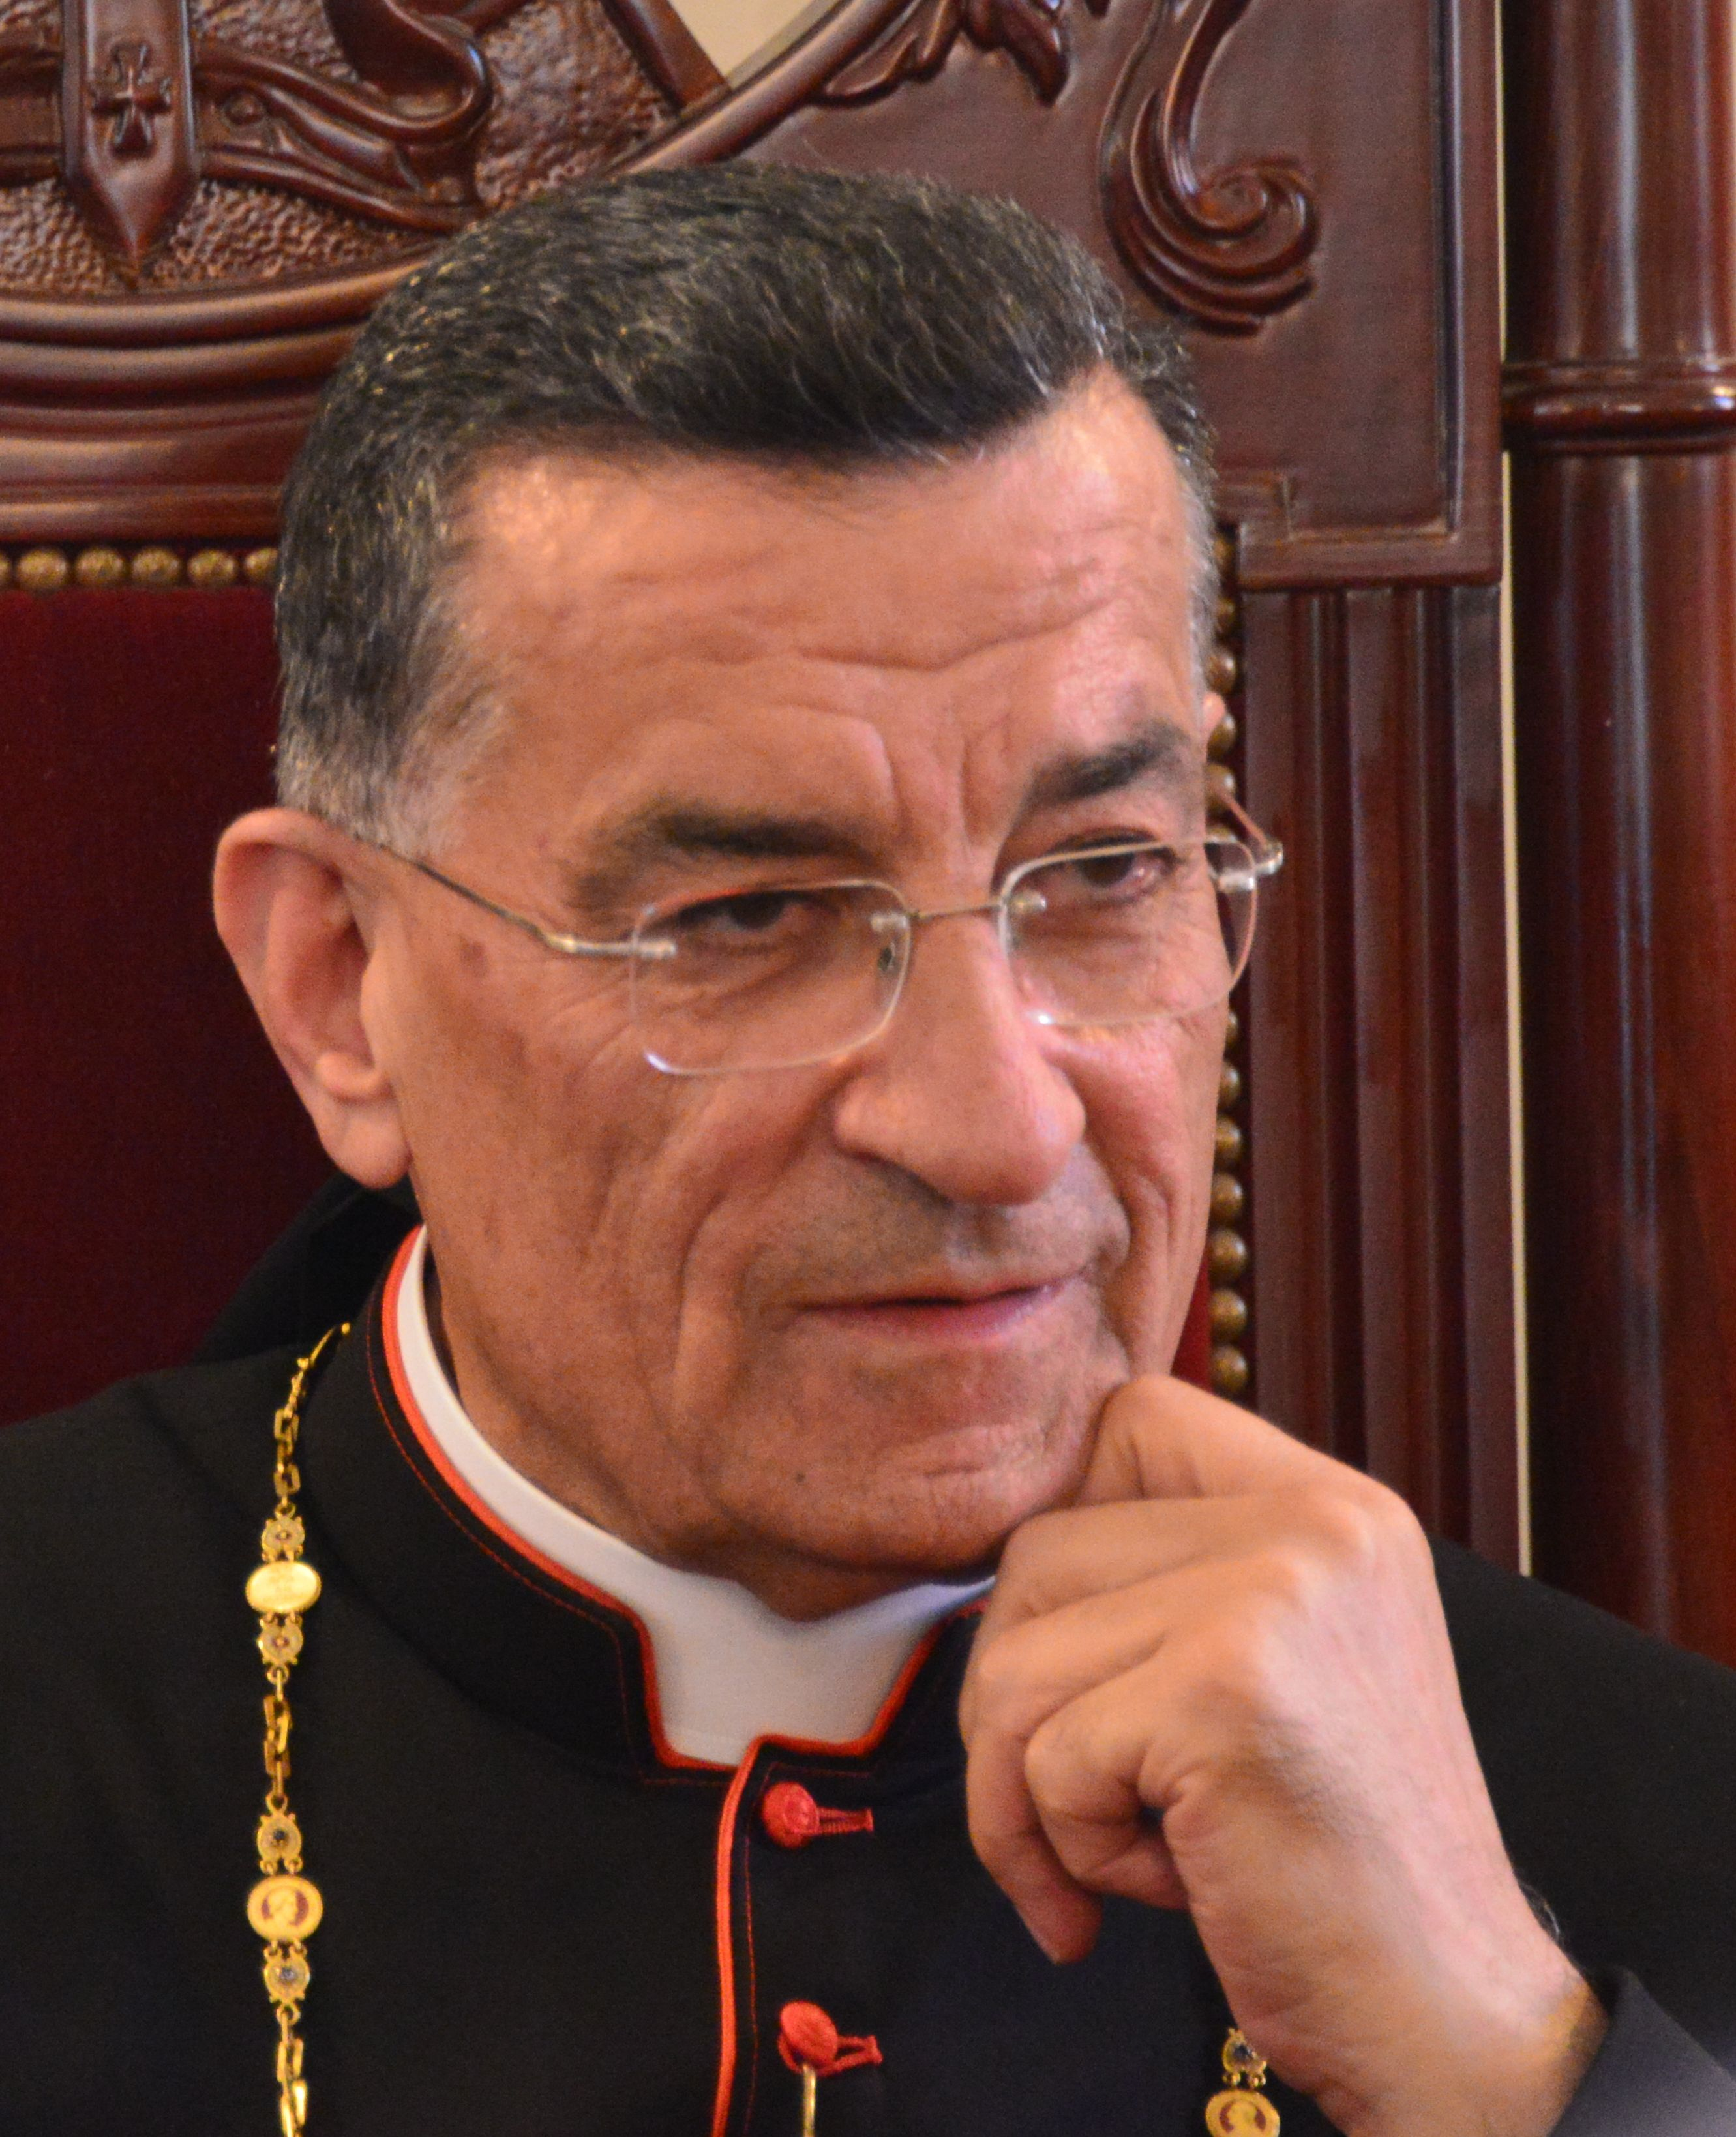 Le patriarche et cardinal maronite Béchara Raï ©ACN - Aid to the Church in Need